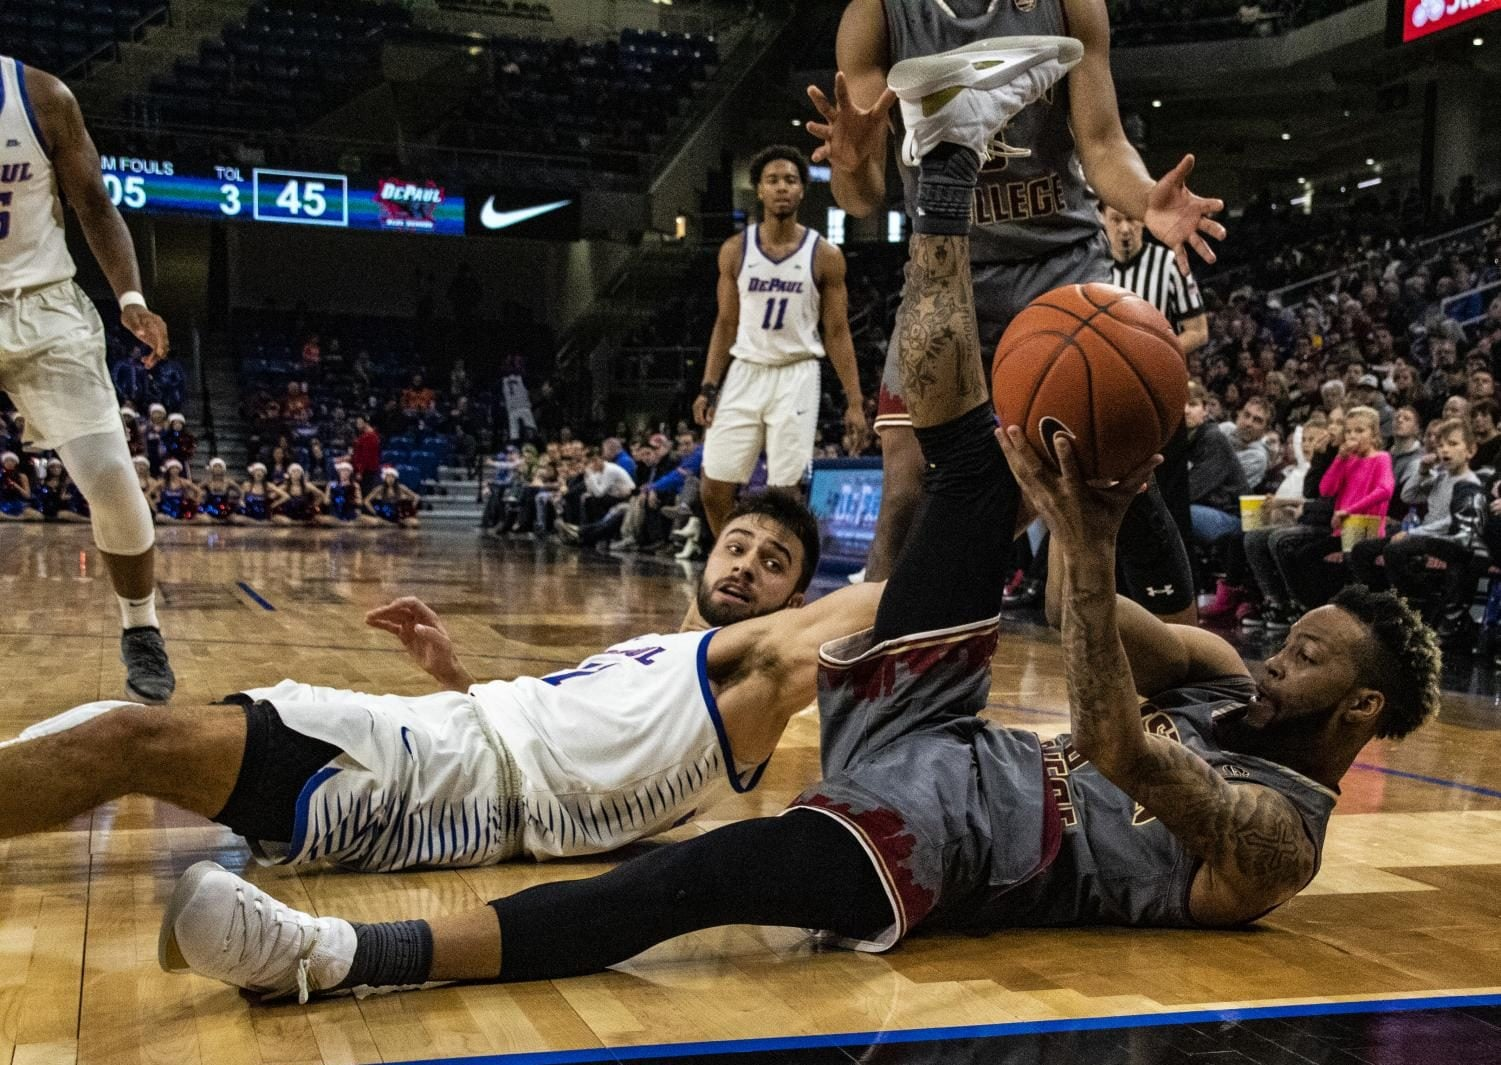 Senior guard Max Strus dives for a loose ball during the second half of DePaul's loss to Boston College. Richard Bodee | The DePaulia